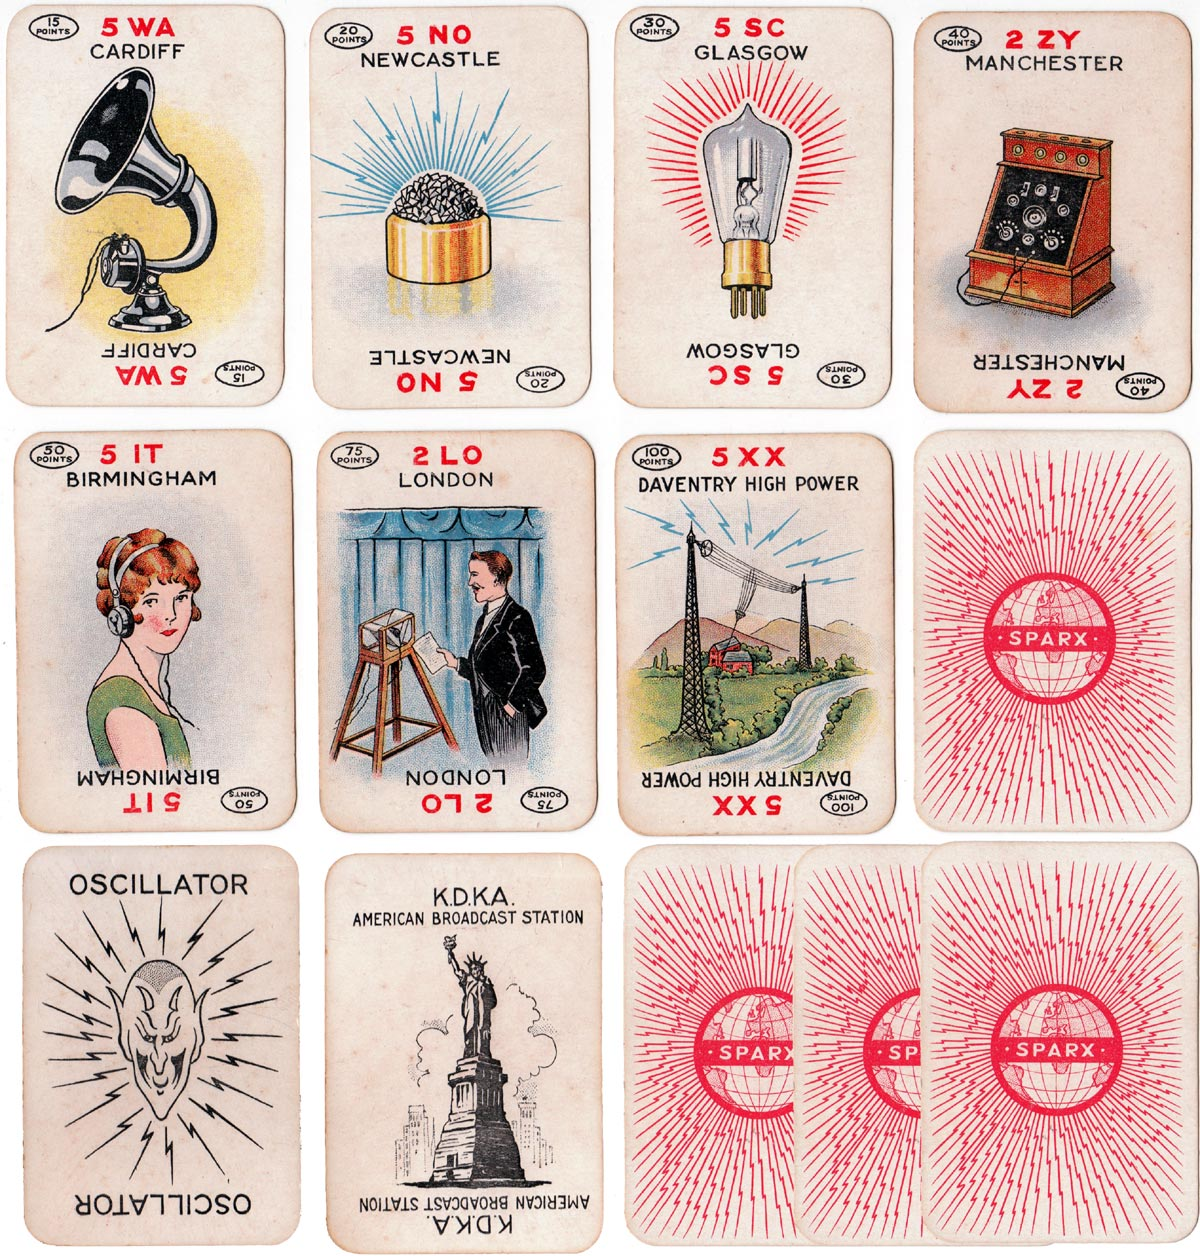 'Sparx' card game, or 'Listening In', published by Chad Valley Games, c.1925